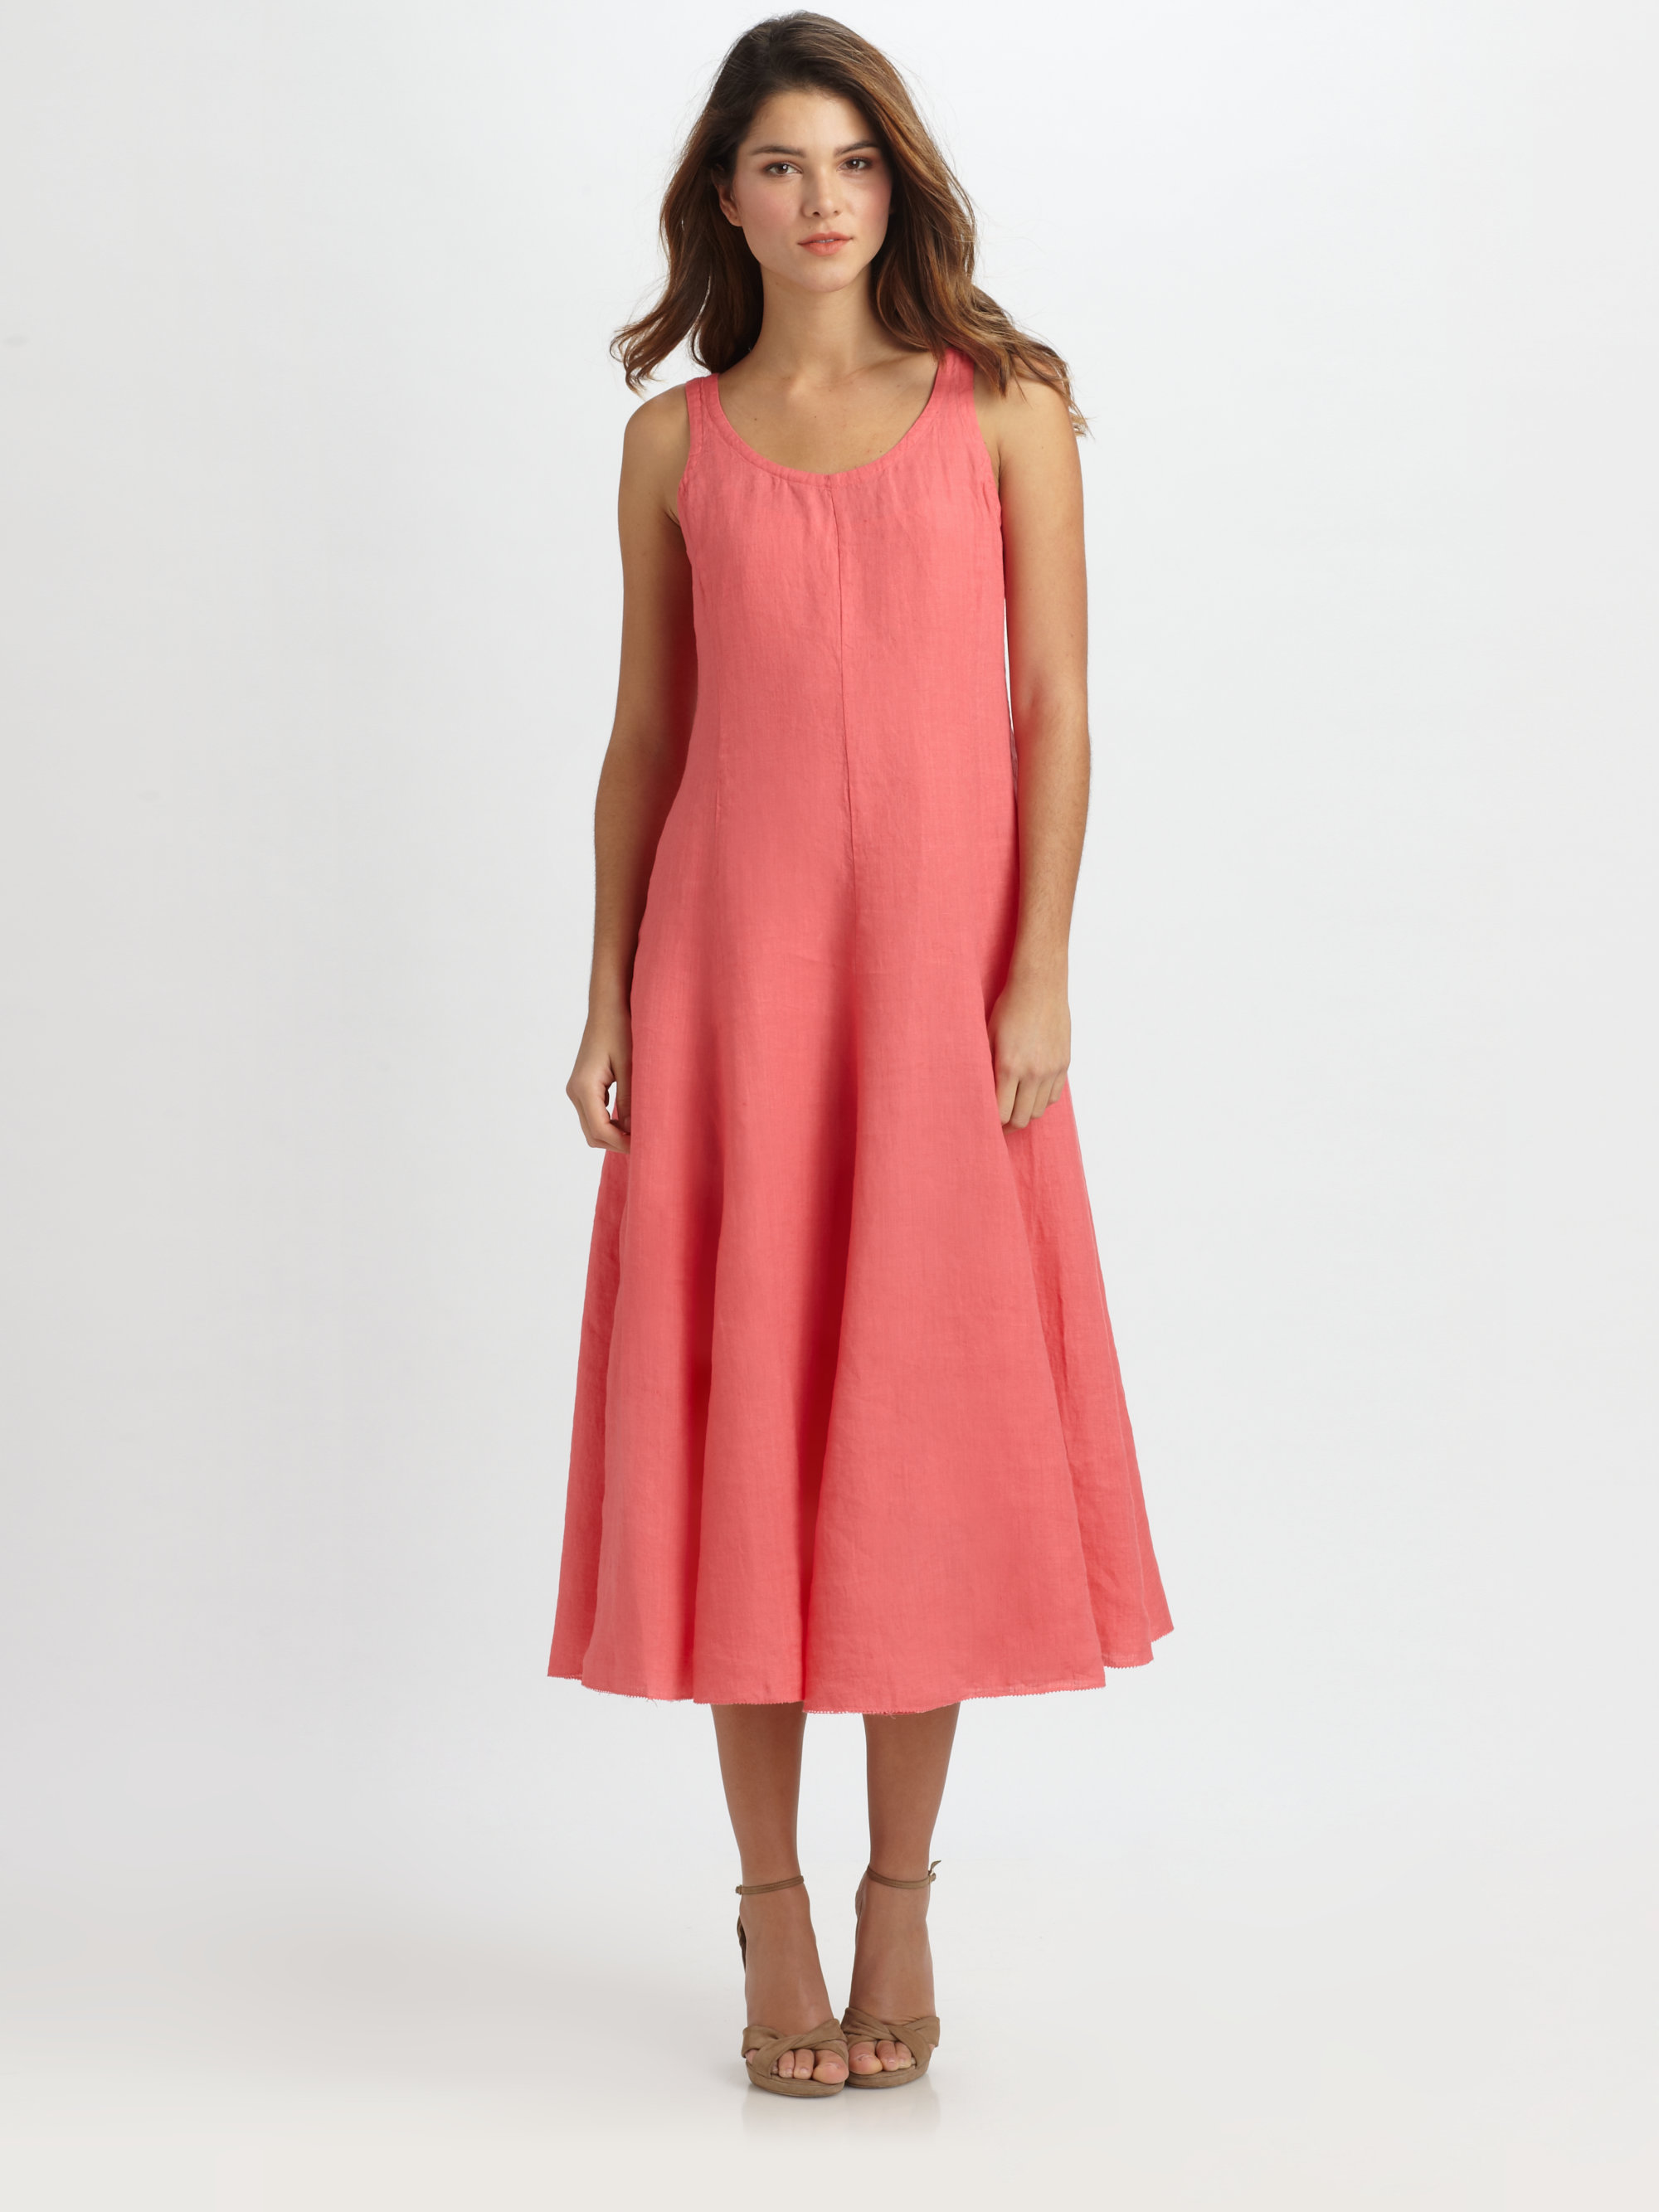 570bfde31ad Lyst - Eileen Fisher Sleeveless Linen Dress in Red